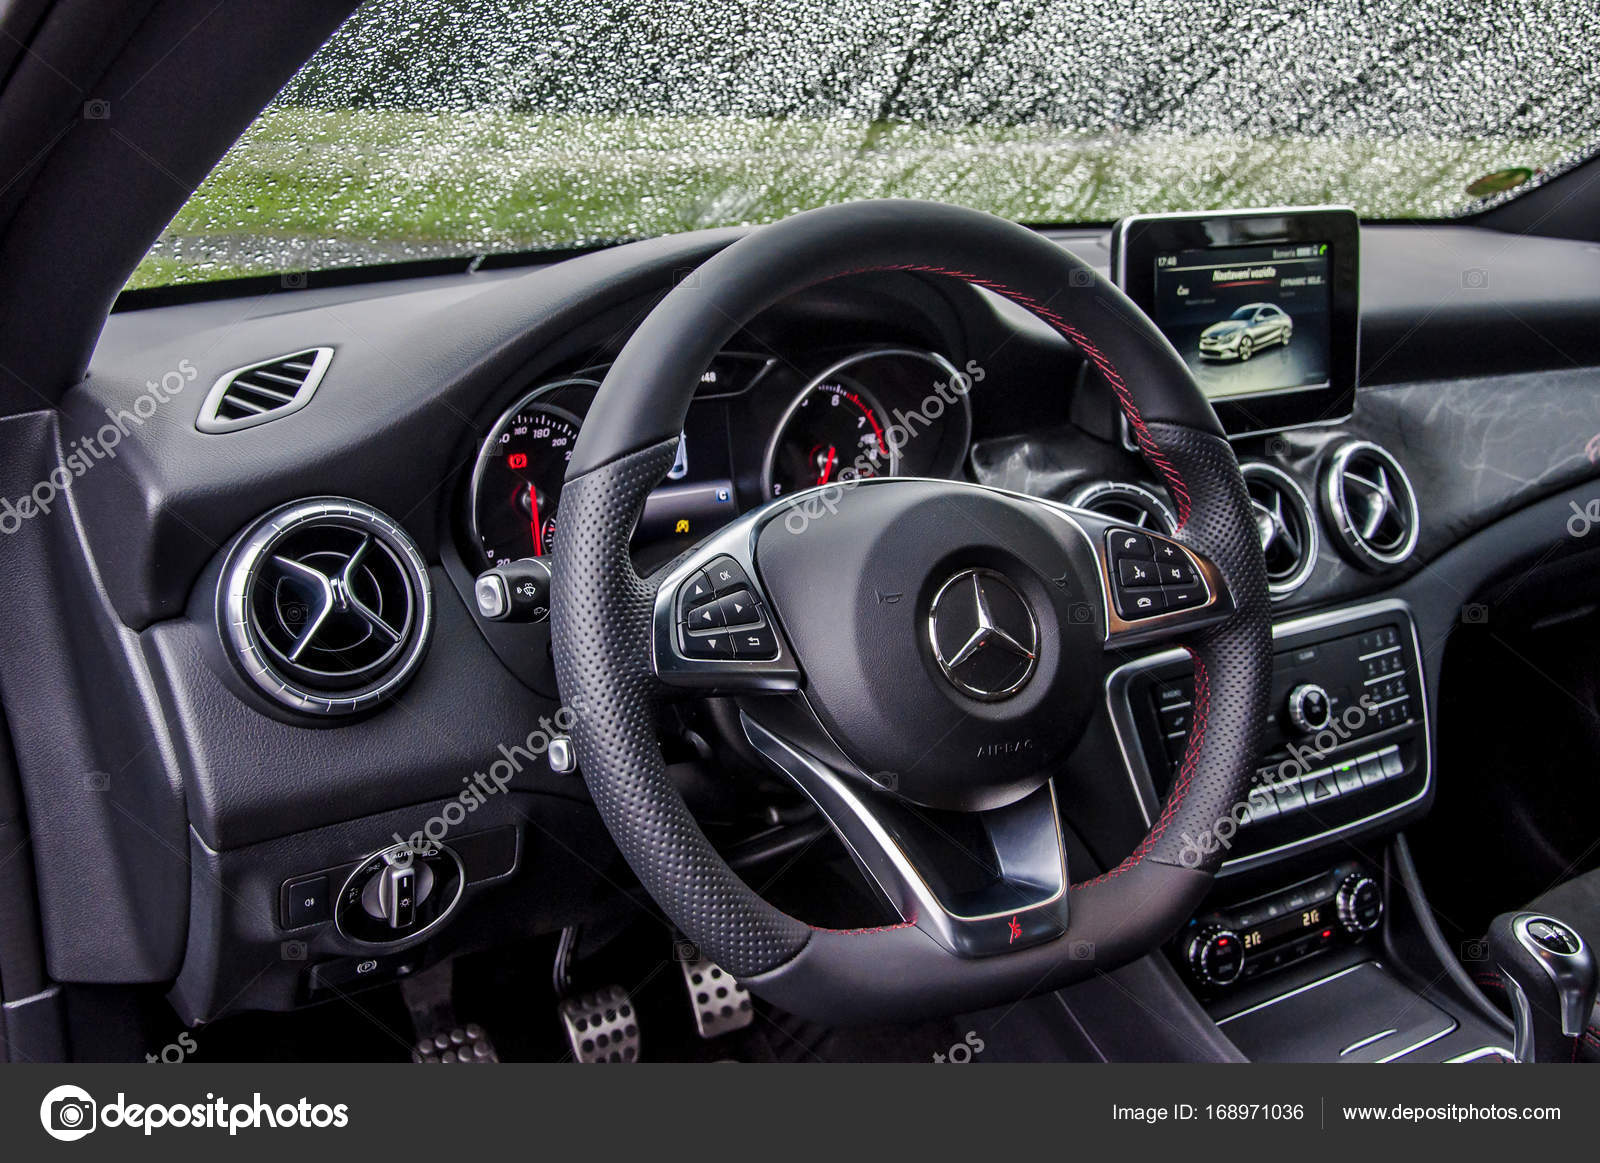 luxe auto interieur van mercedes benz redactionele. Black Bedroom Furniture Sets. Home Design Ideas